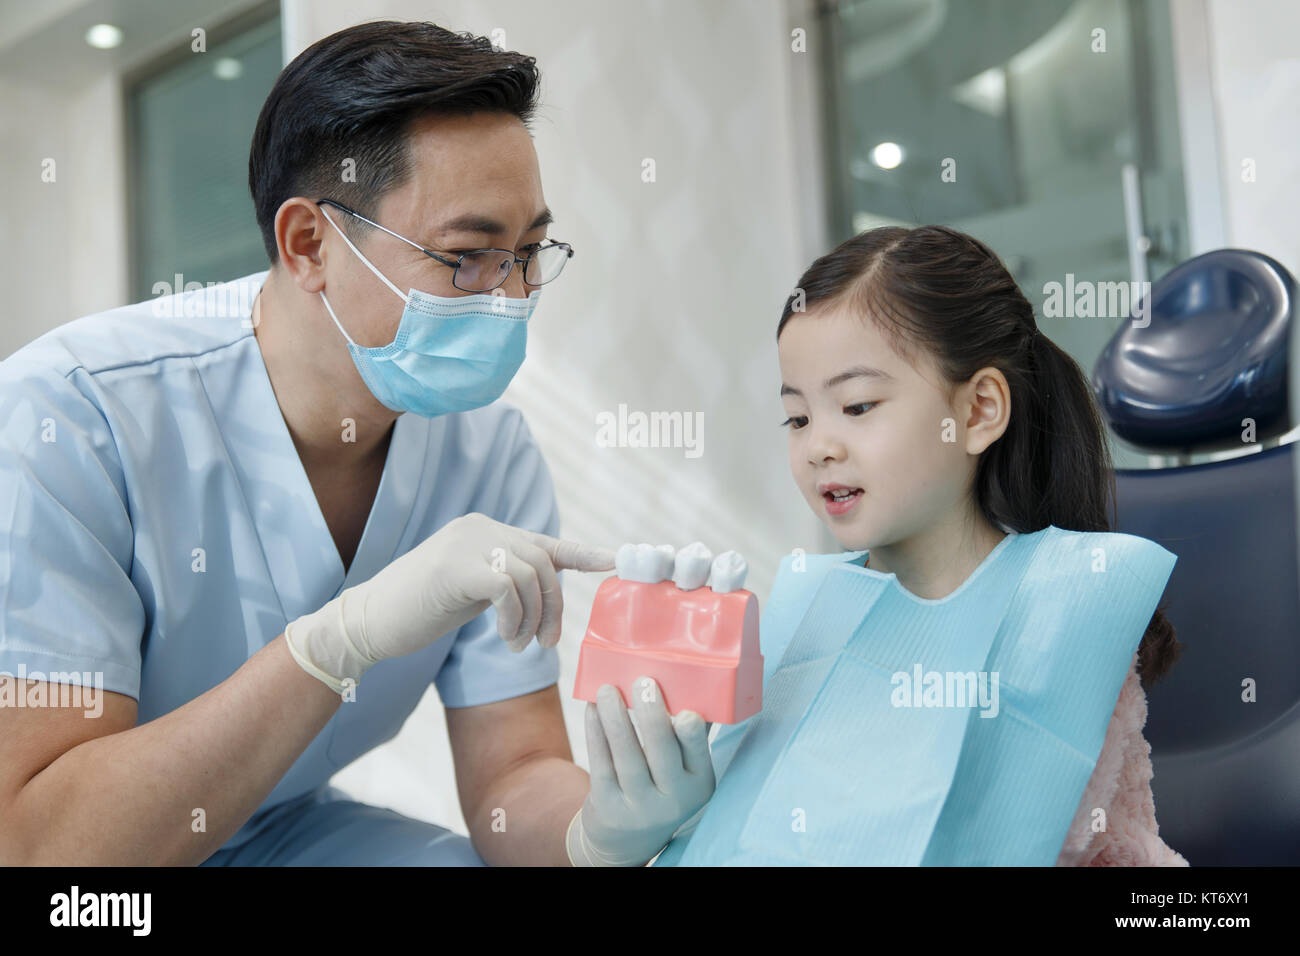 Cute little girl and dentist - Stock Image